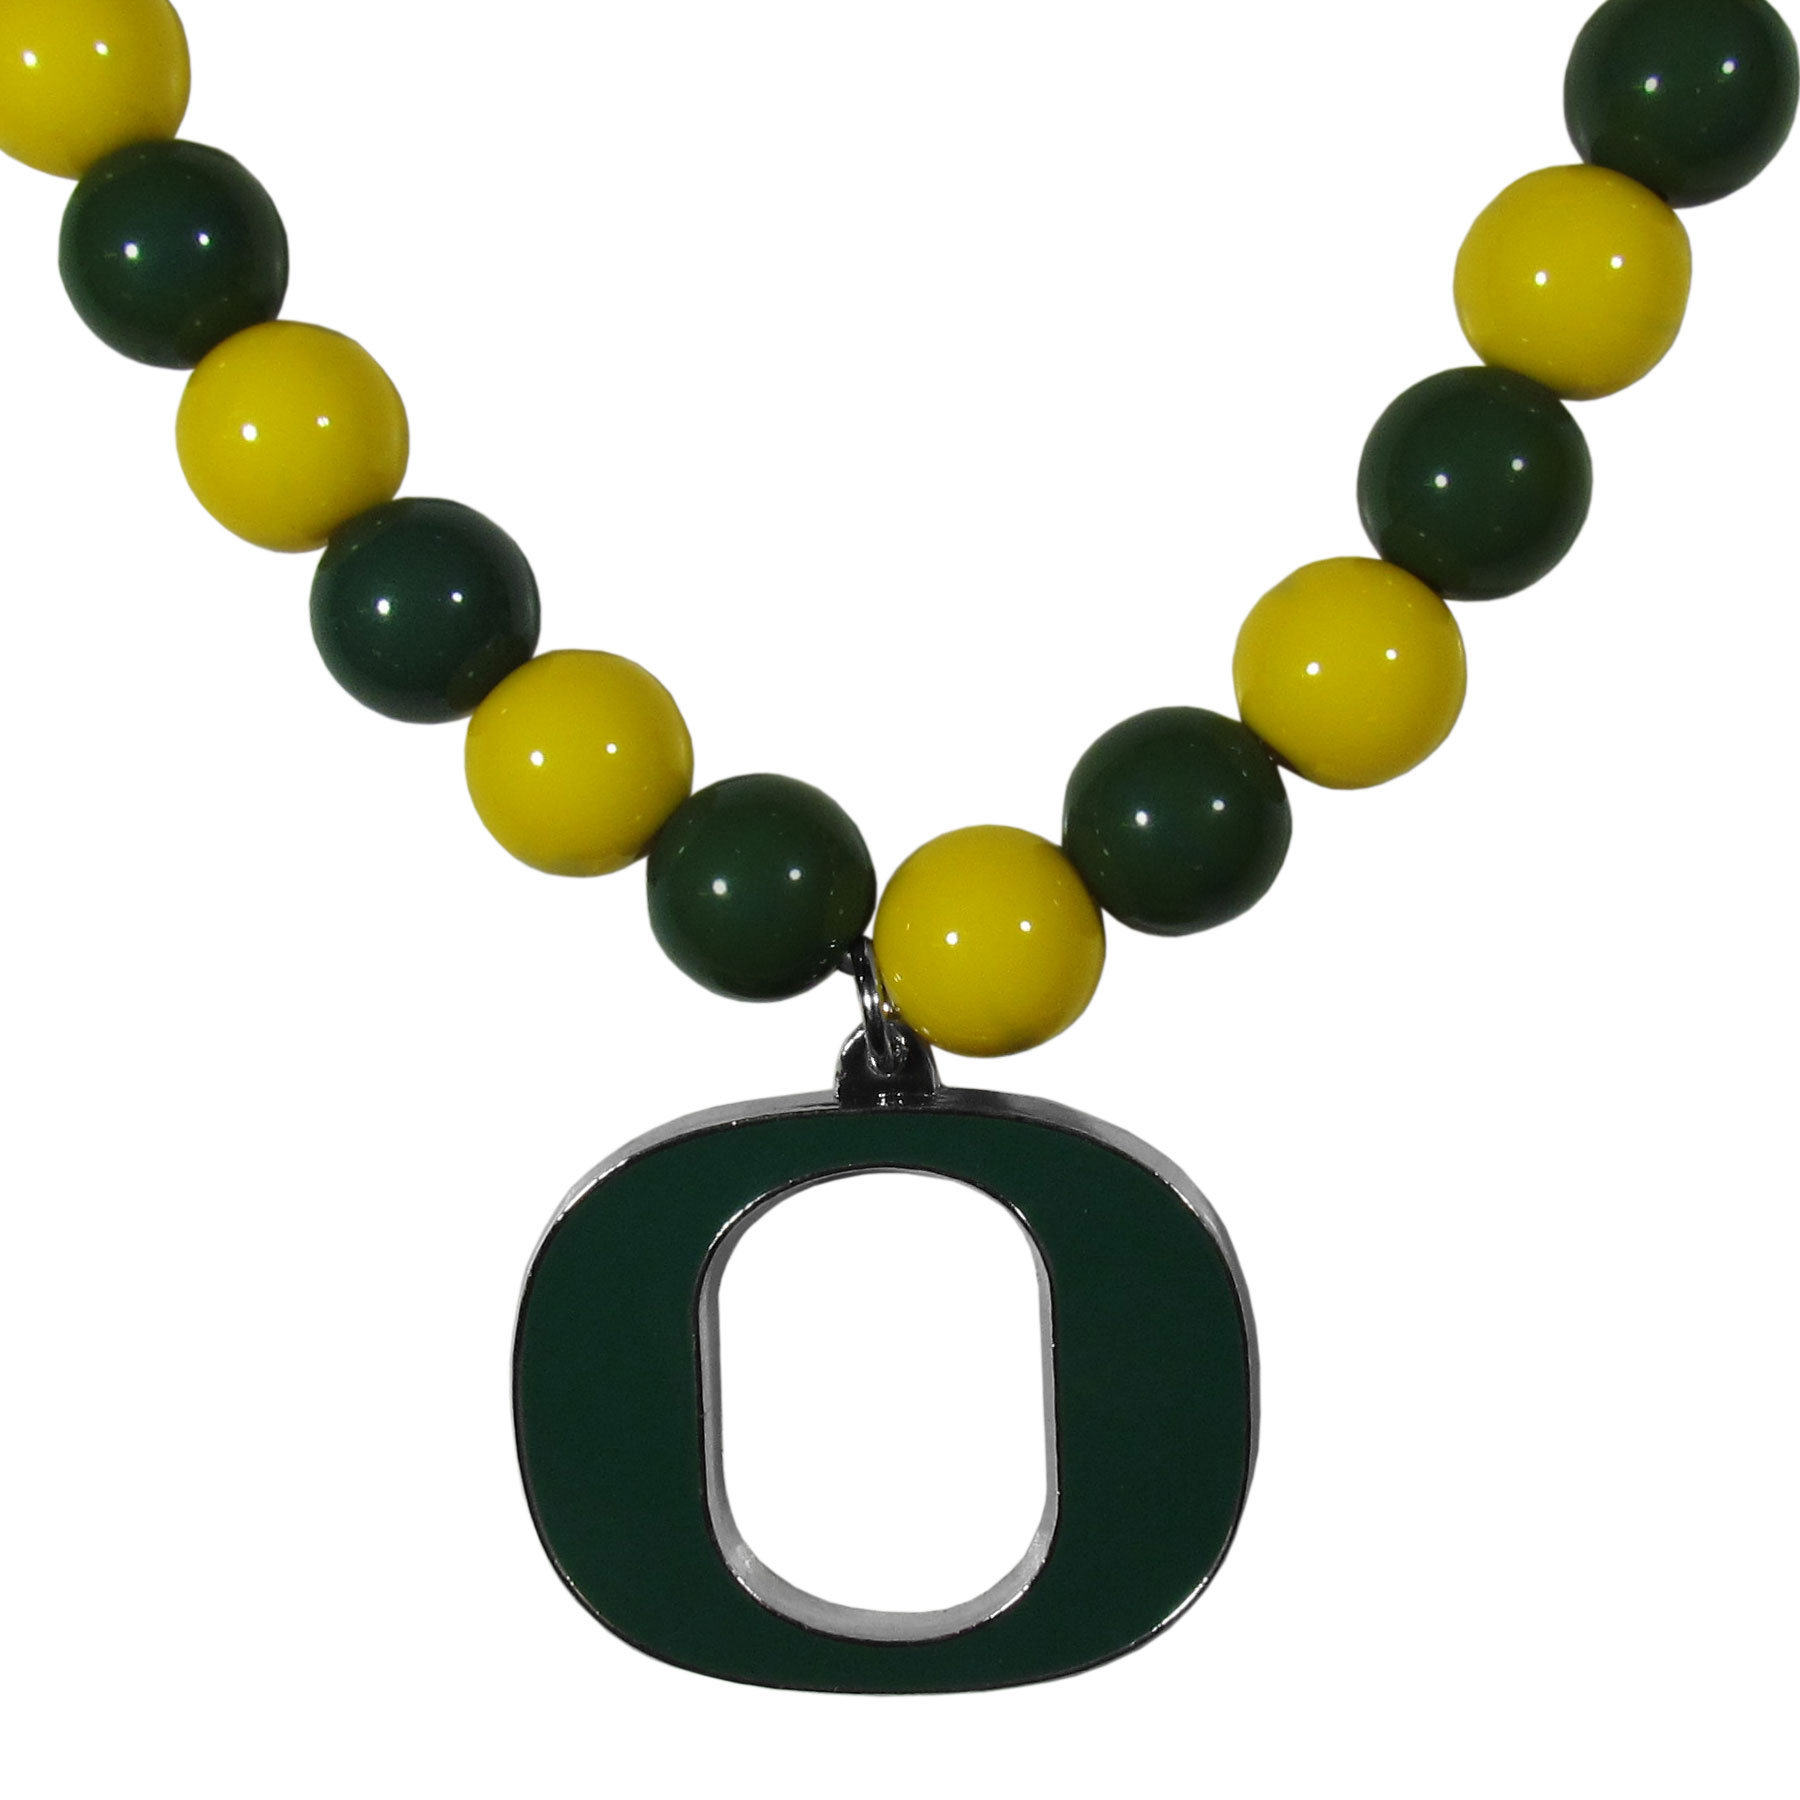 Oregon Ducks Fan Bead Necklace - Make a big statement with our fan bead necklaces! These brightly colored necklace have a 24 inch string of alternating colored beads with an extra large, high-polish Oregon Ducks pendant.